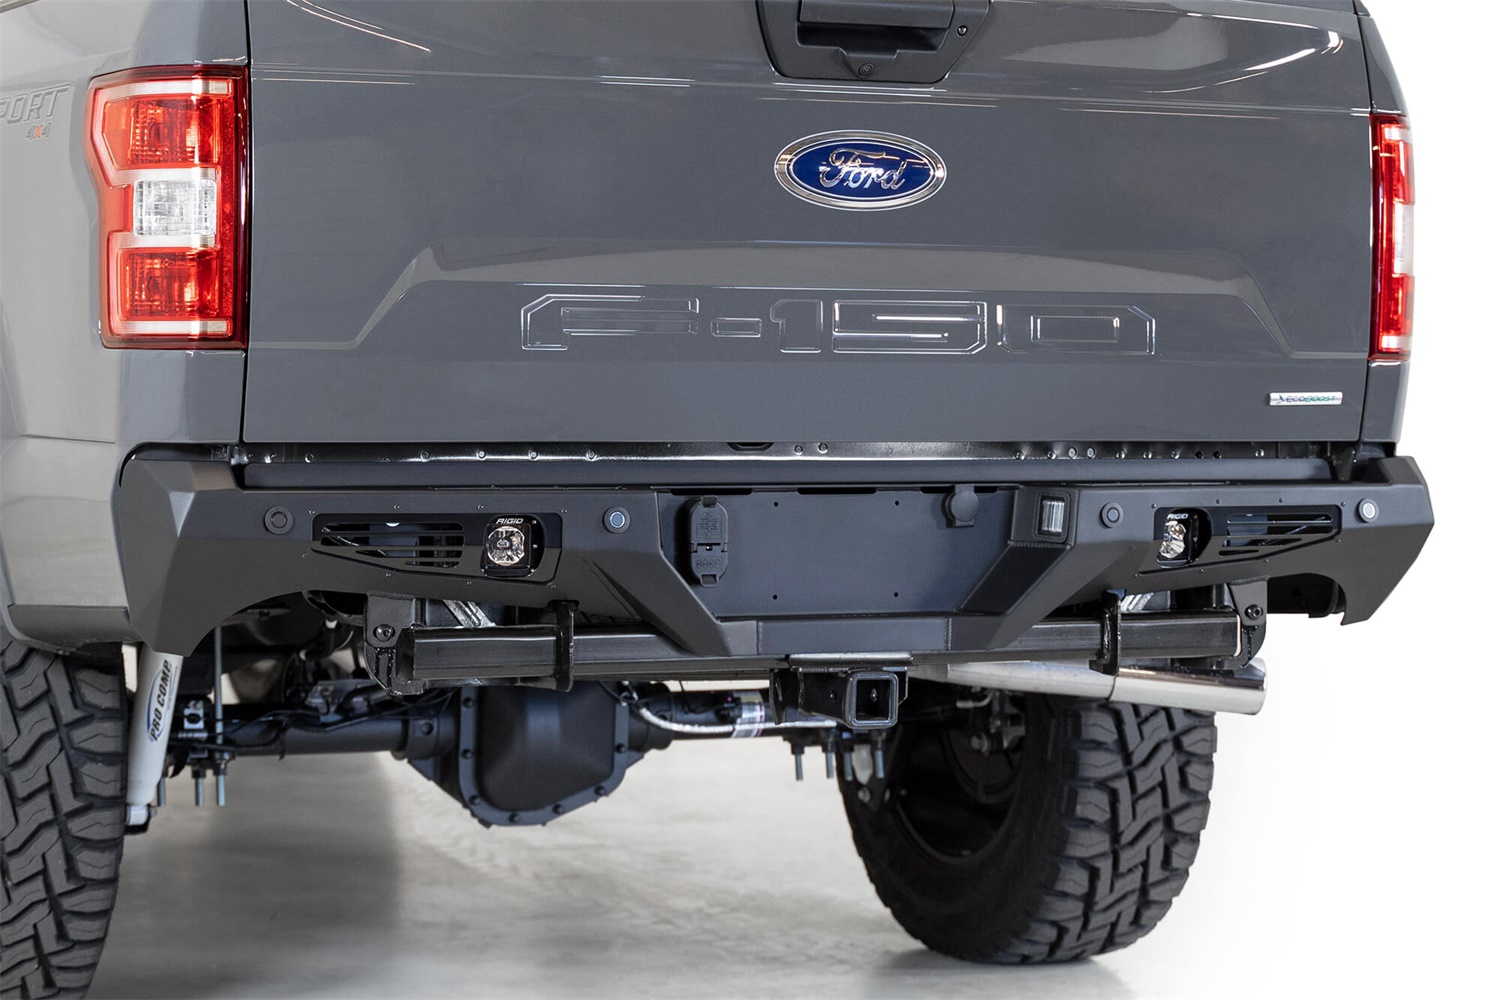 Addictive Desert Designs R180011370103 Bomber Rear Bumper Fits 15-20 F-150